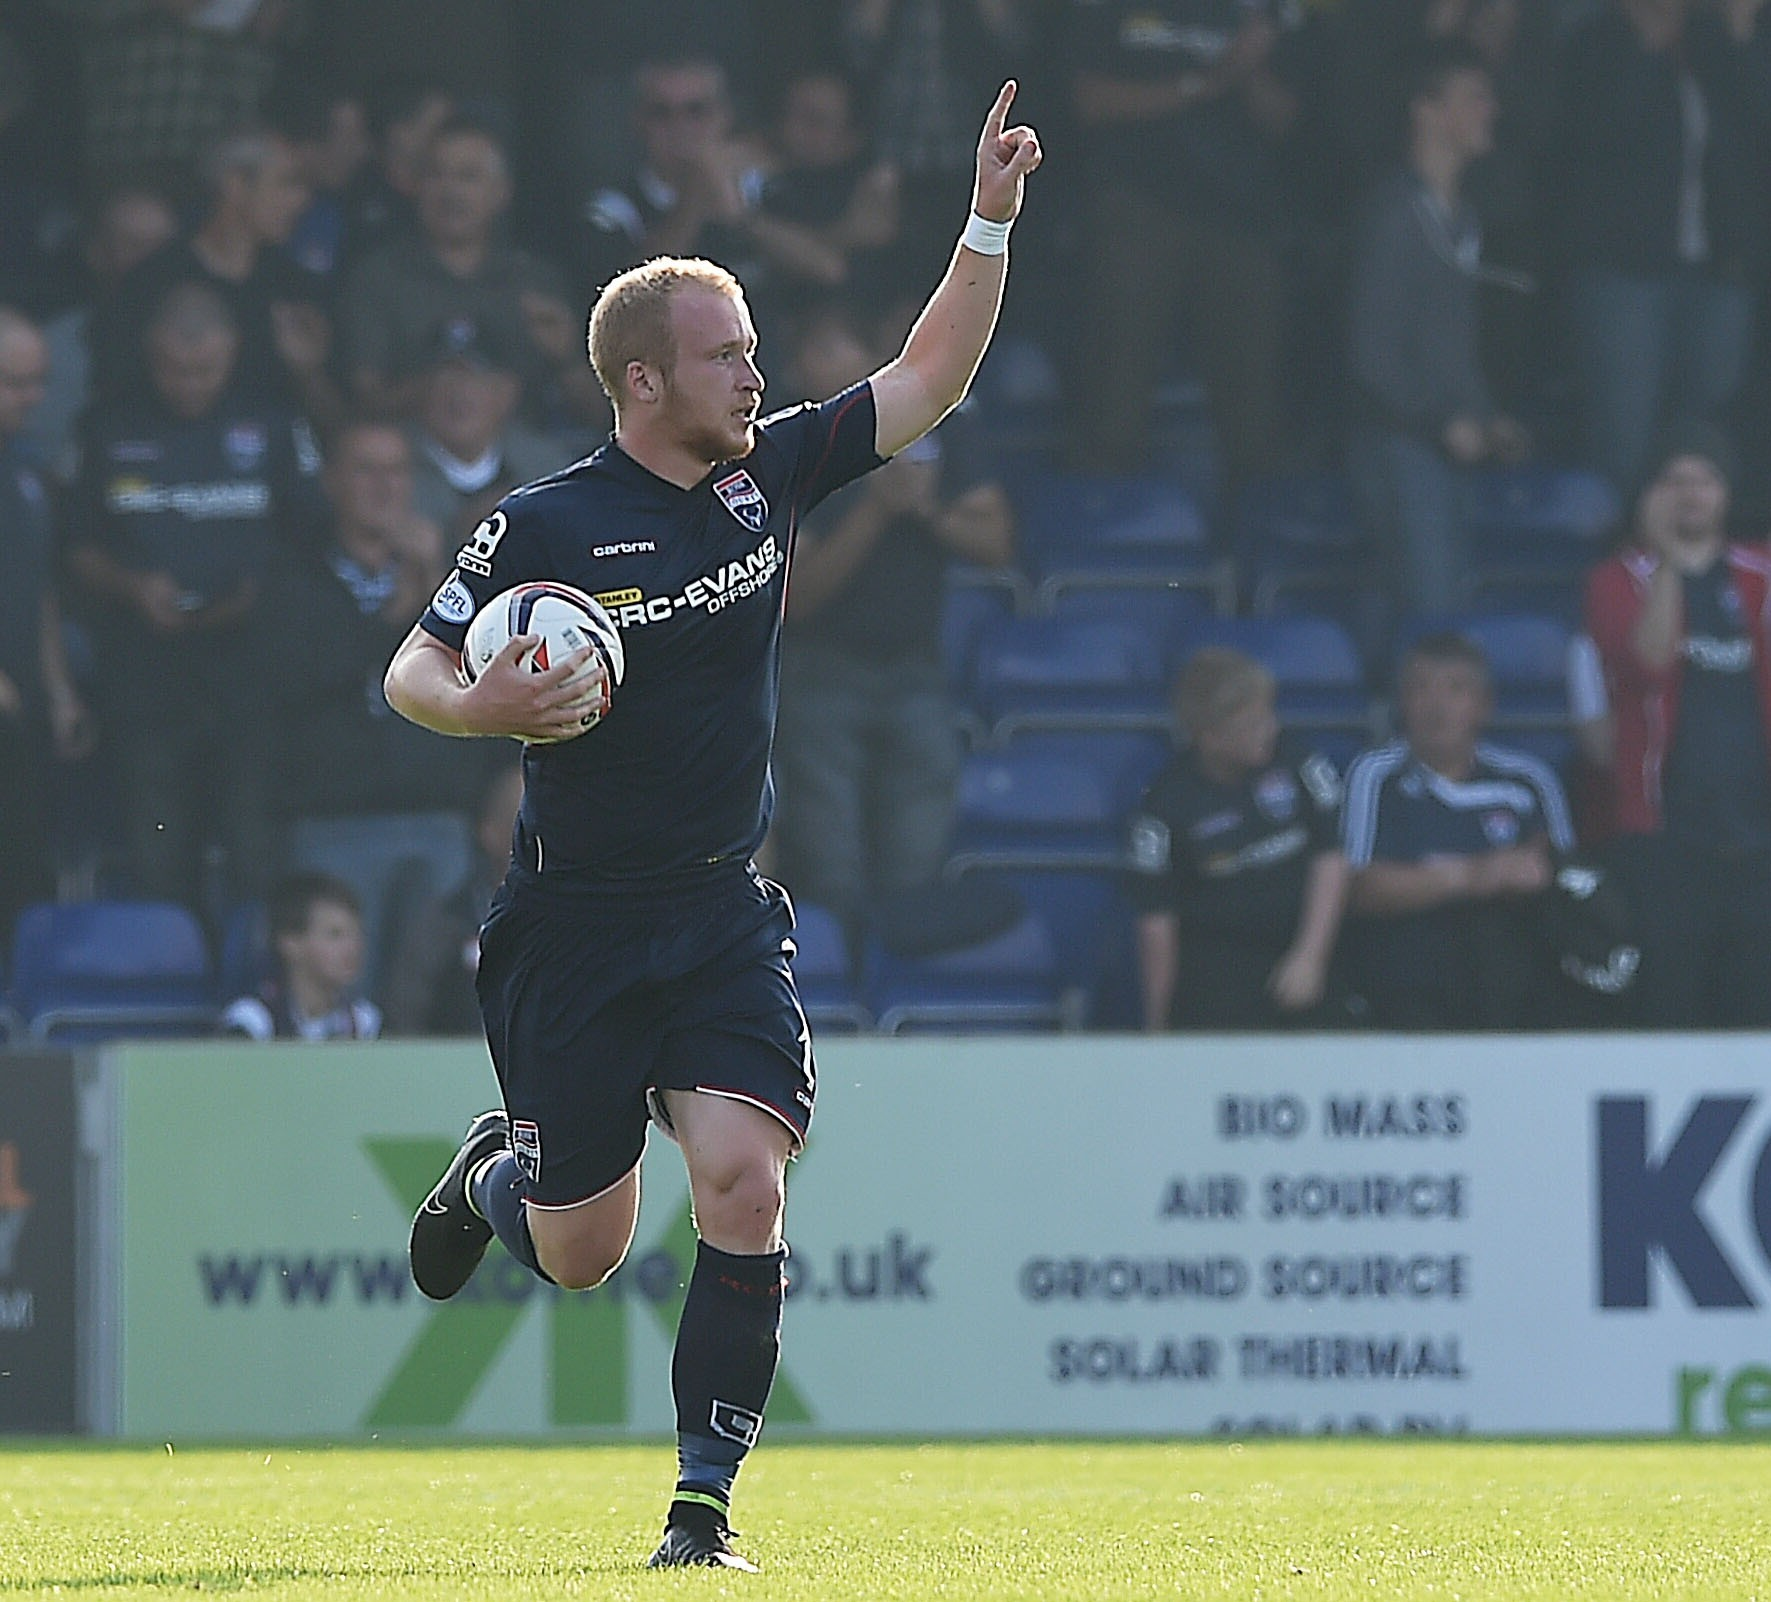 Boyce has netted some crucial goals for the Staggies this season